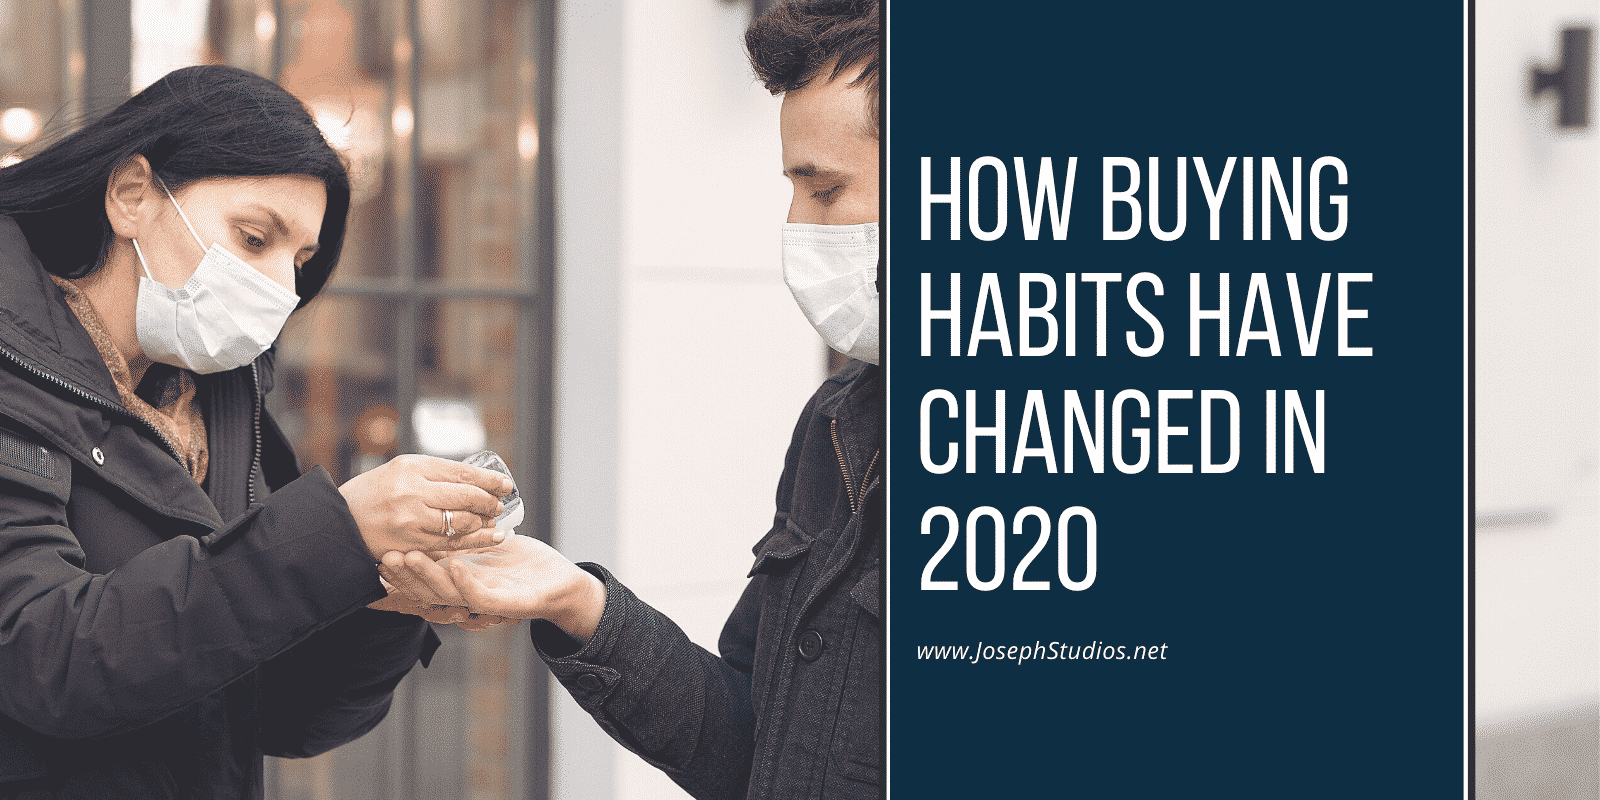 How Buying Habits Have Changed in 2020